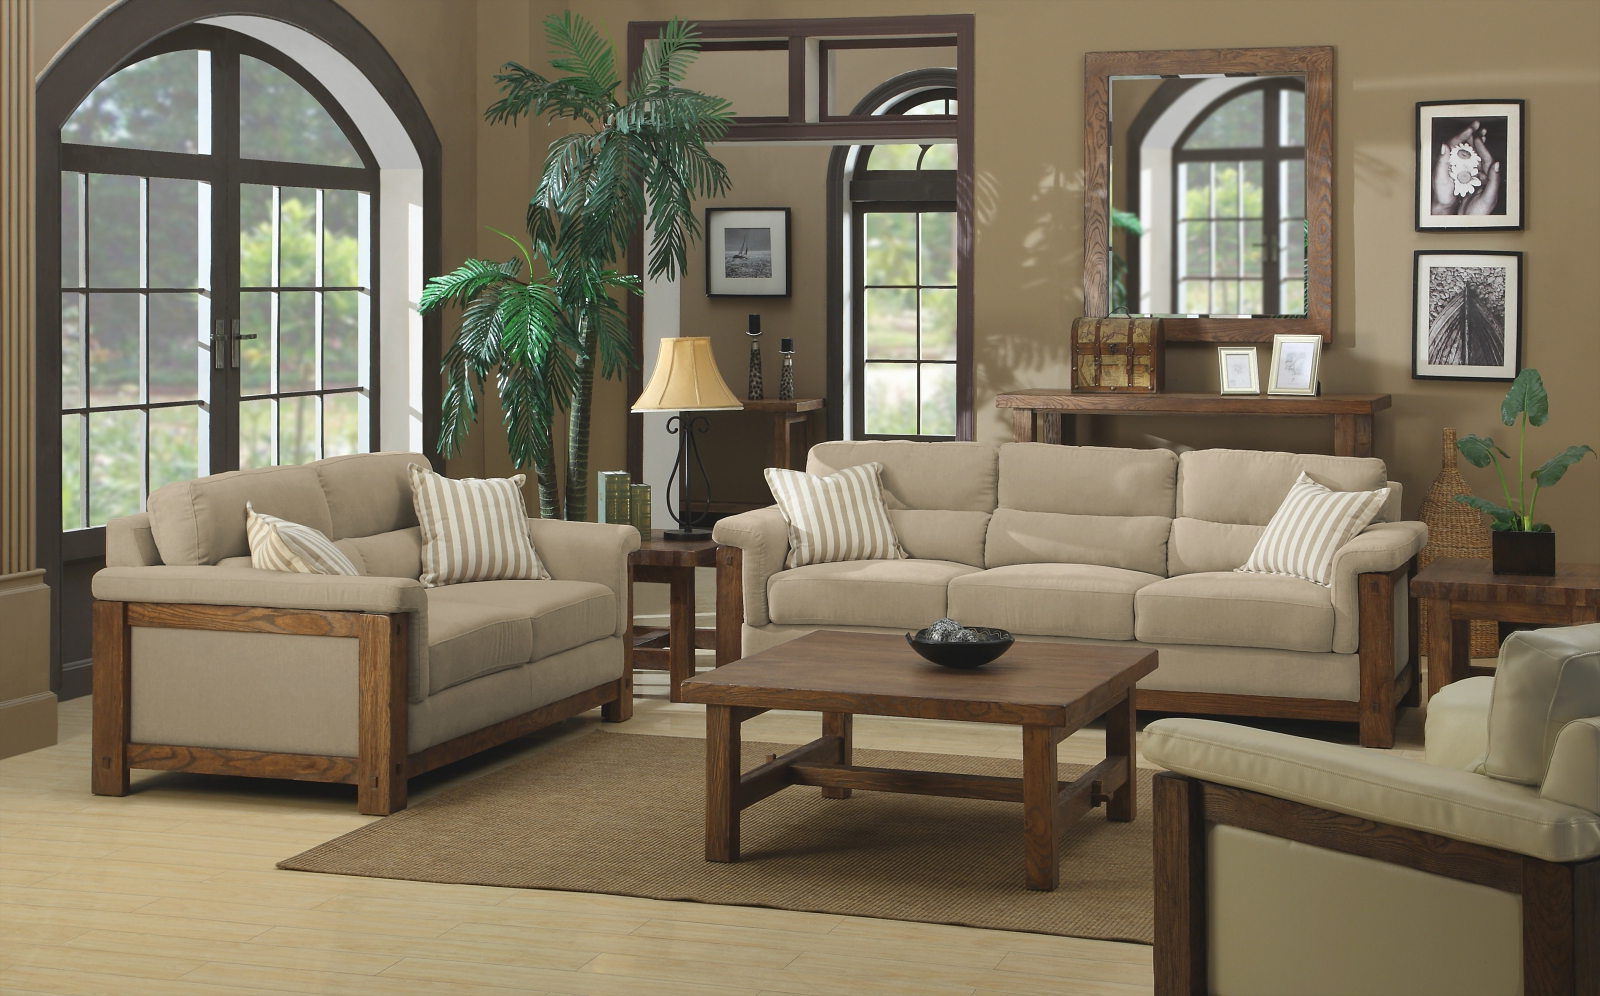 Living room in beige color for Living room colors photos